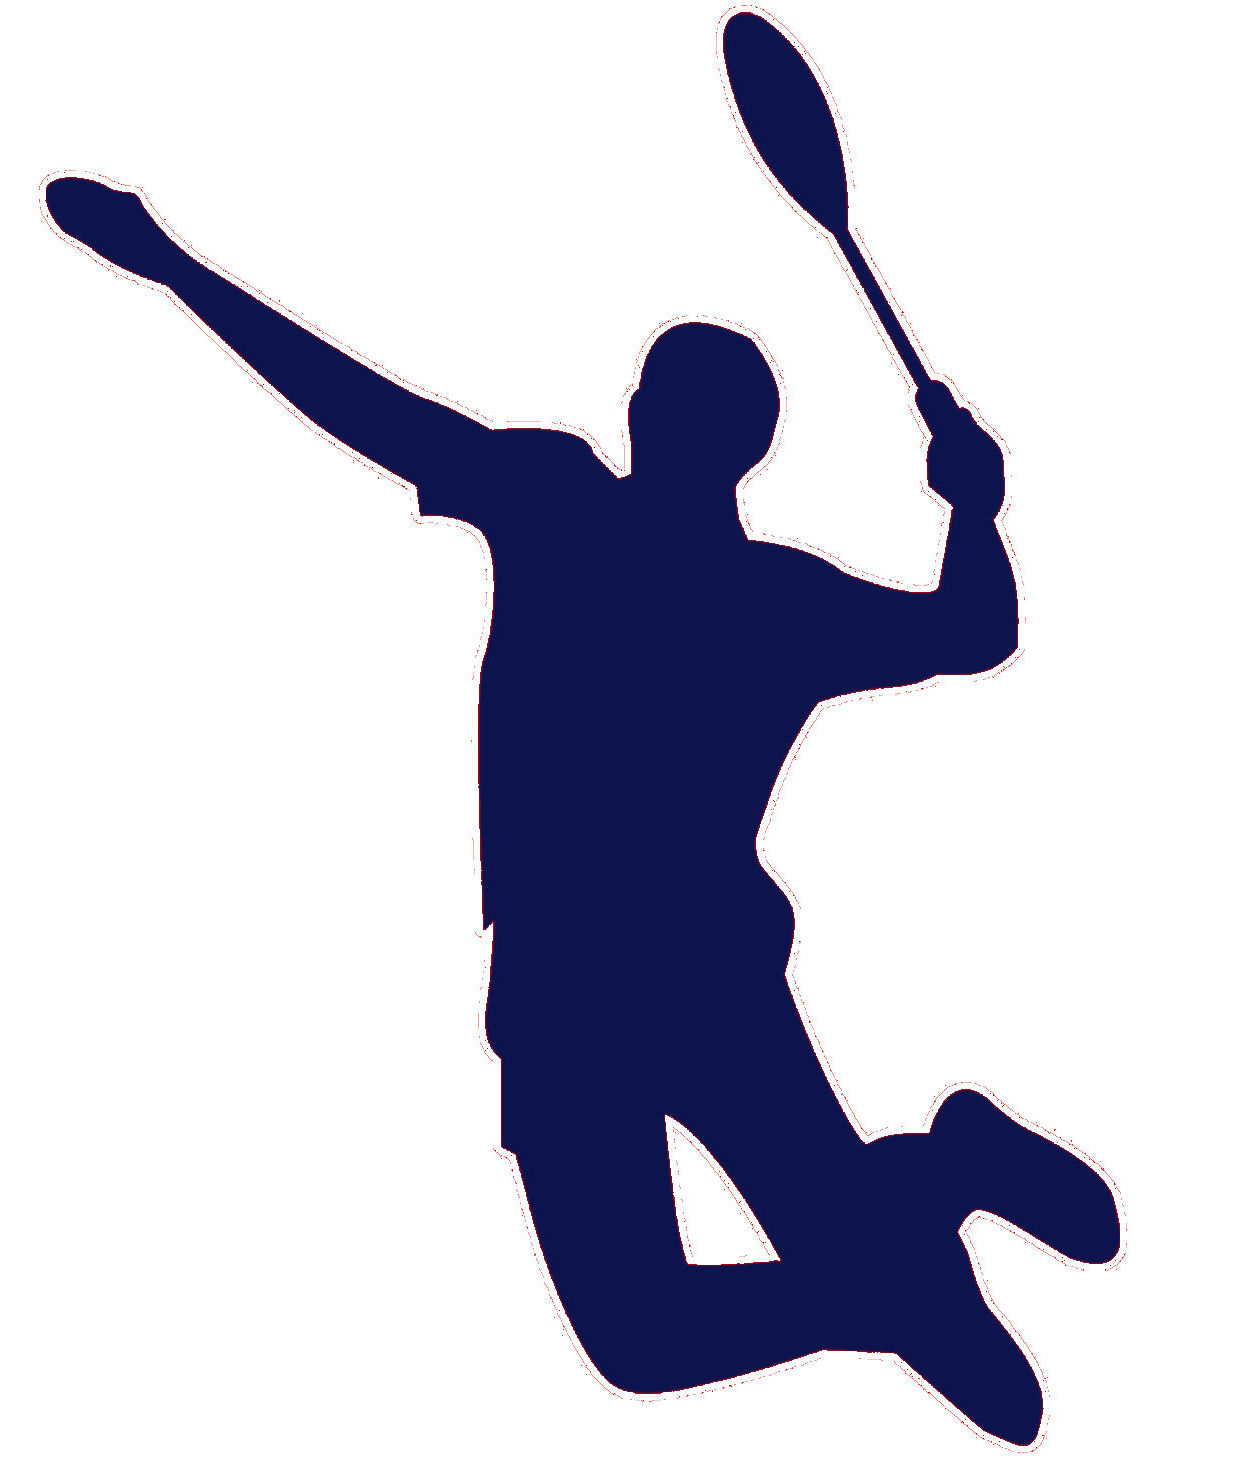 Sudbury & District Junior Badminton Club Pro Shop